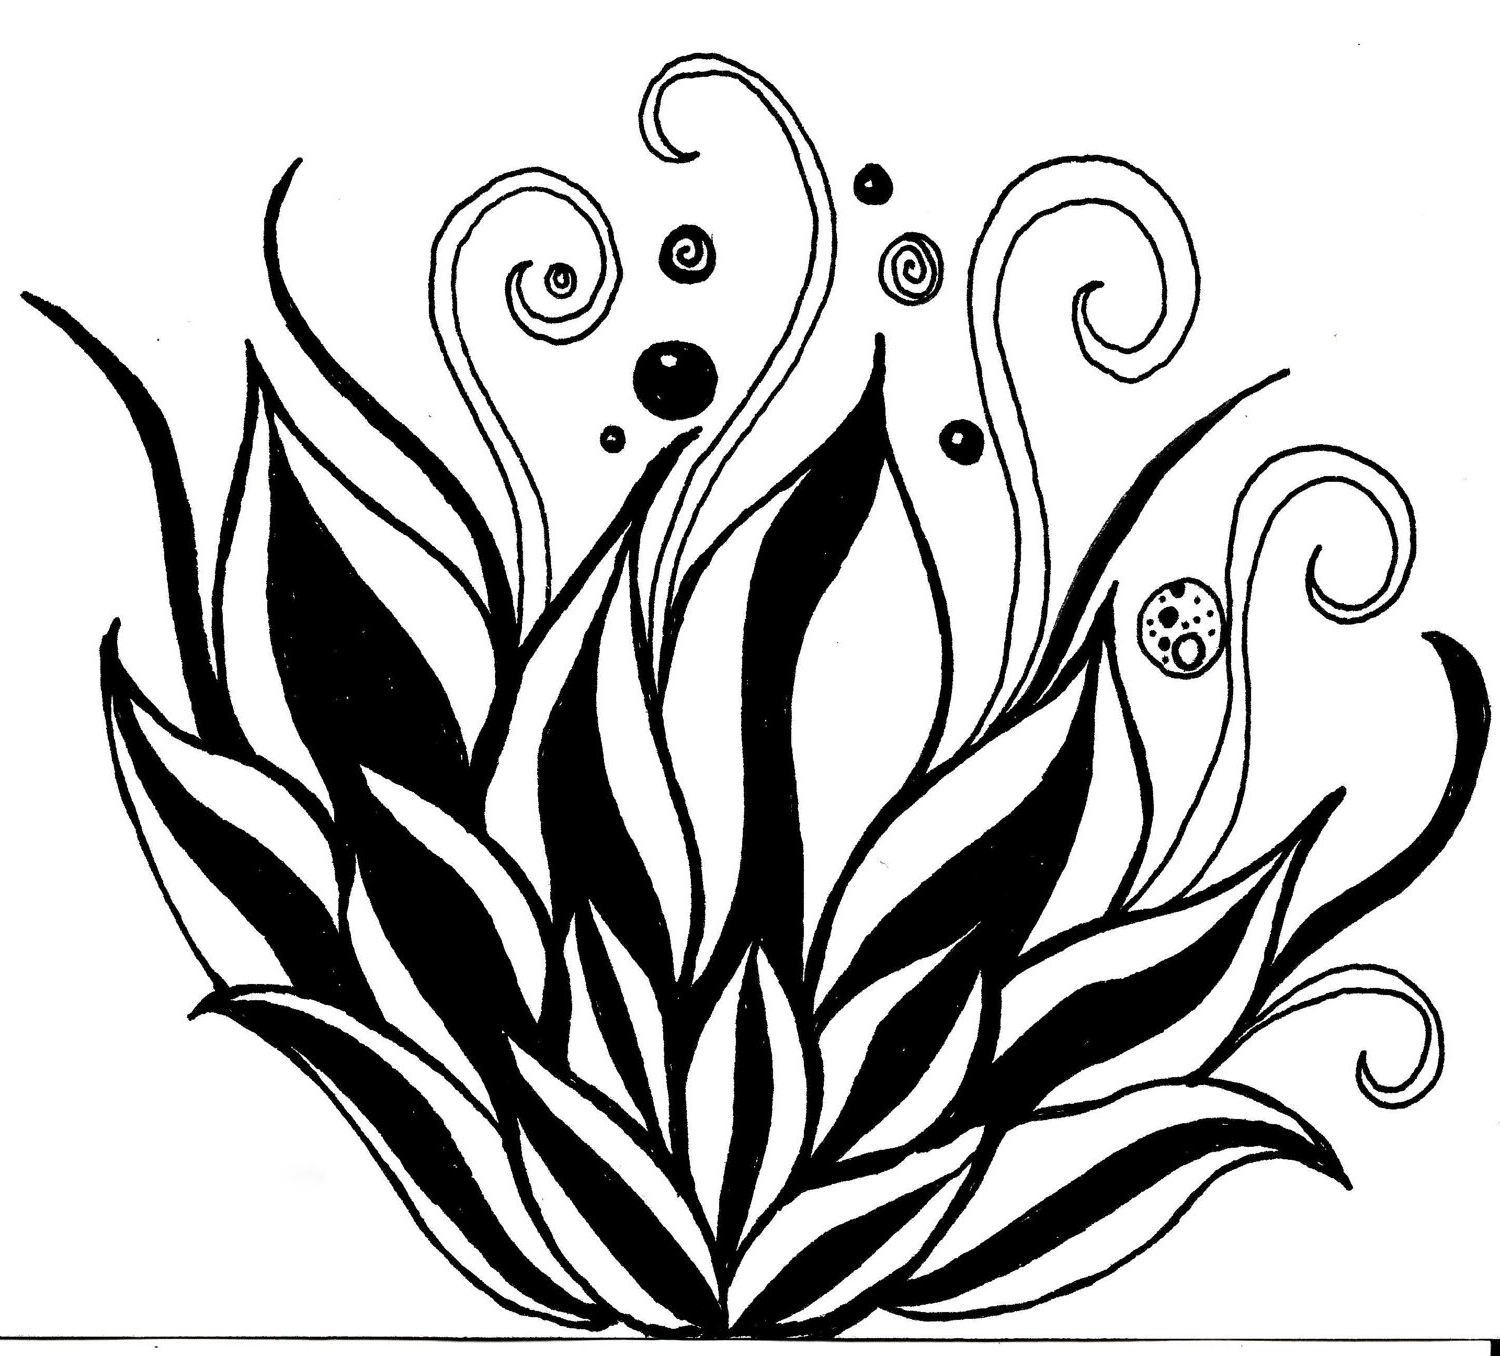 1500x1356 Black And White Flower Drawings Pics Flower Draw Black And White